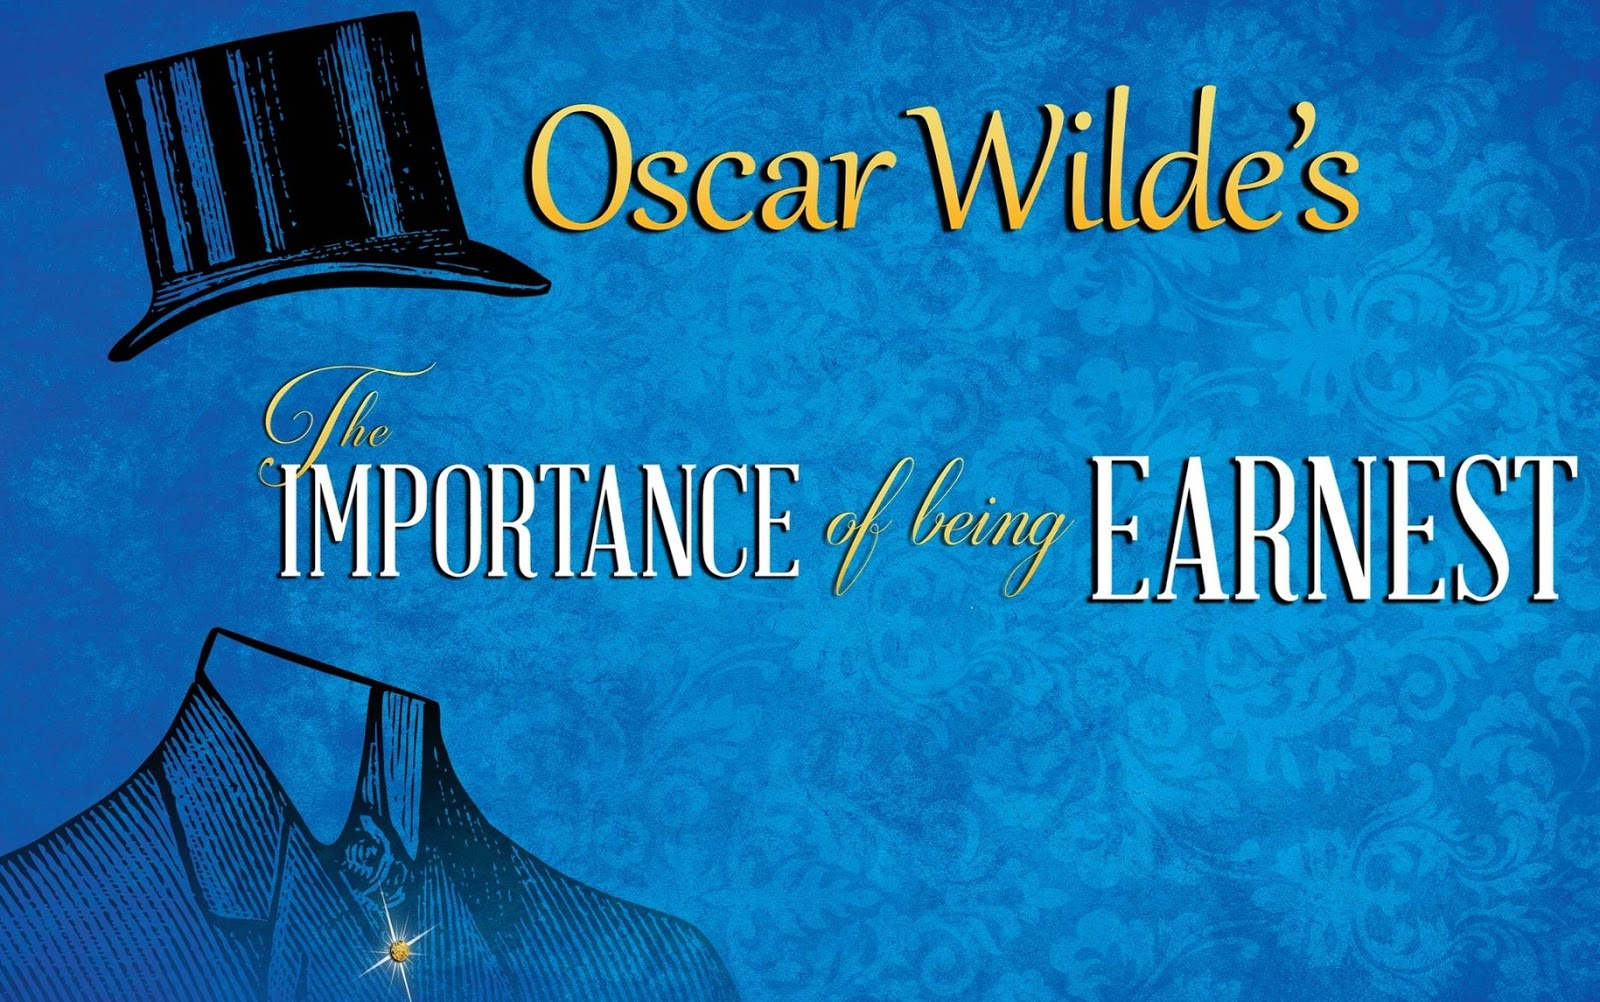 the importance of being earnest satire Satire is defined to be the use of humor to ridicule faults and vices the importance of being earnest written by oscar wilde is a social satire, using irony.